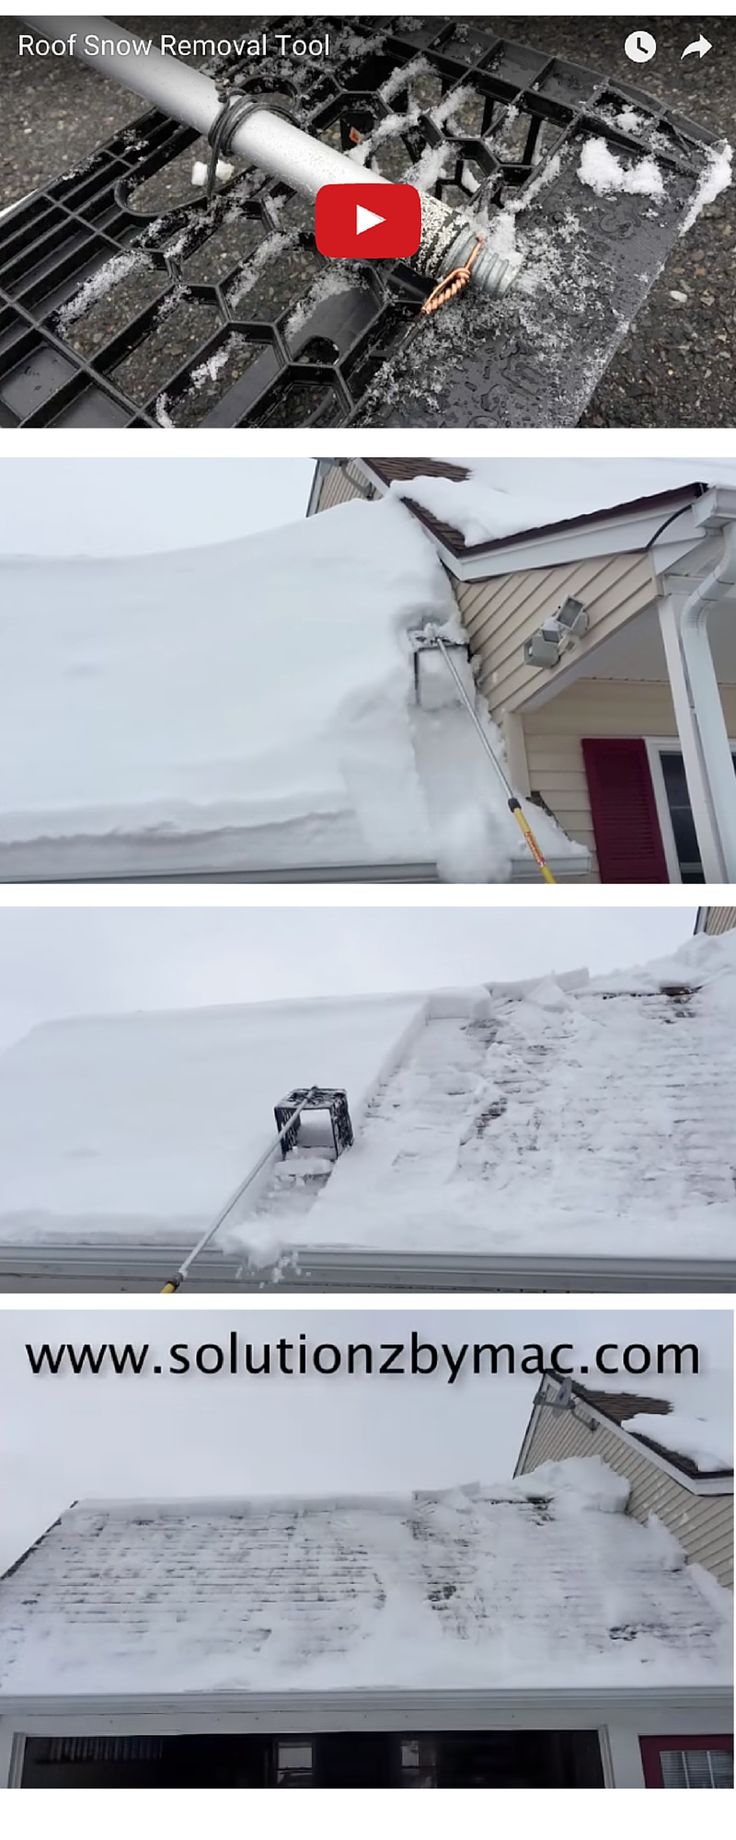 This is a home made roof snow removal tool that is made